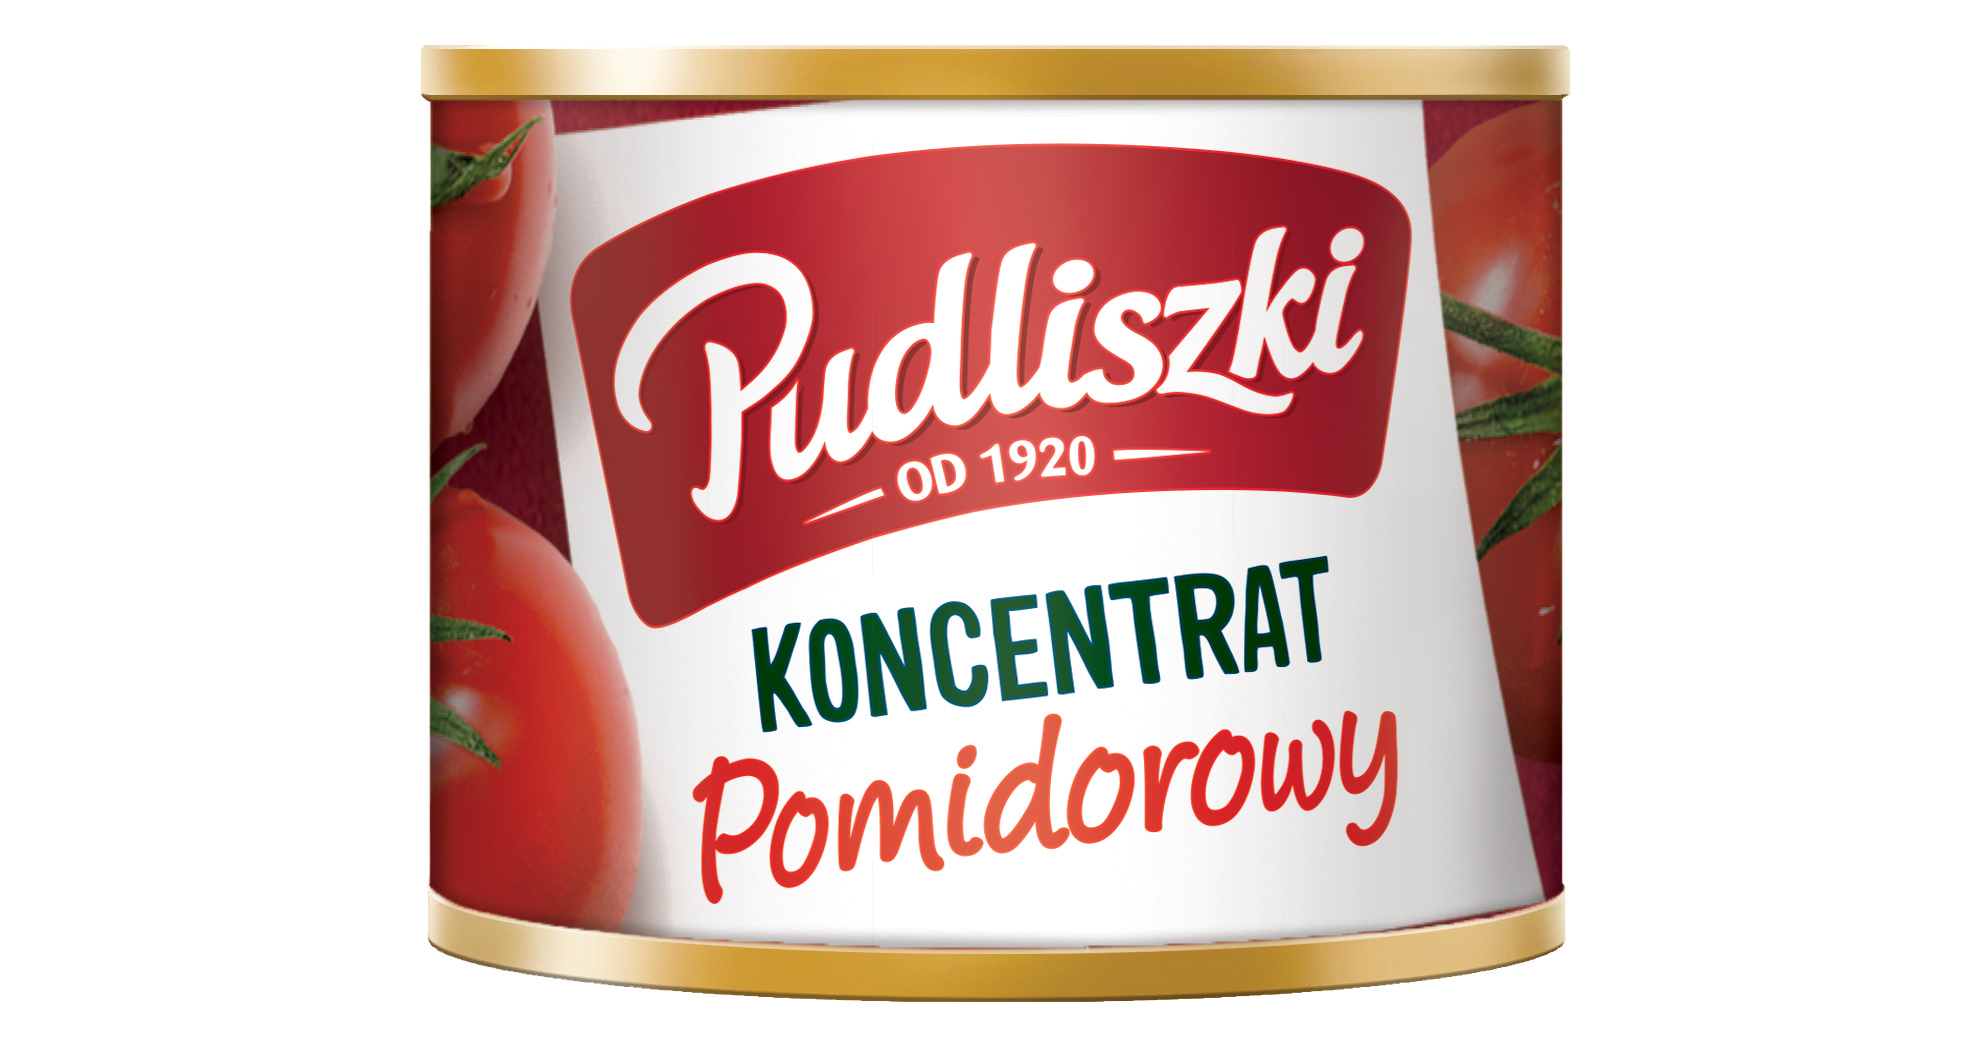 Koncentrat pomidorowy 70 g image